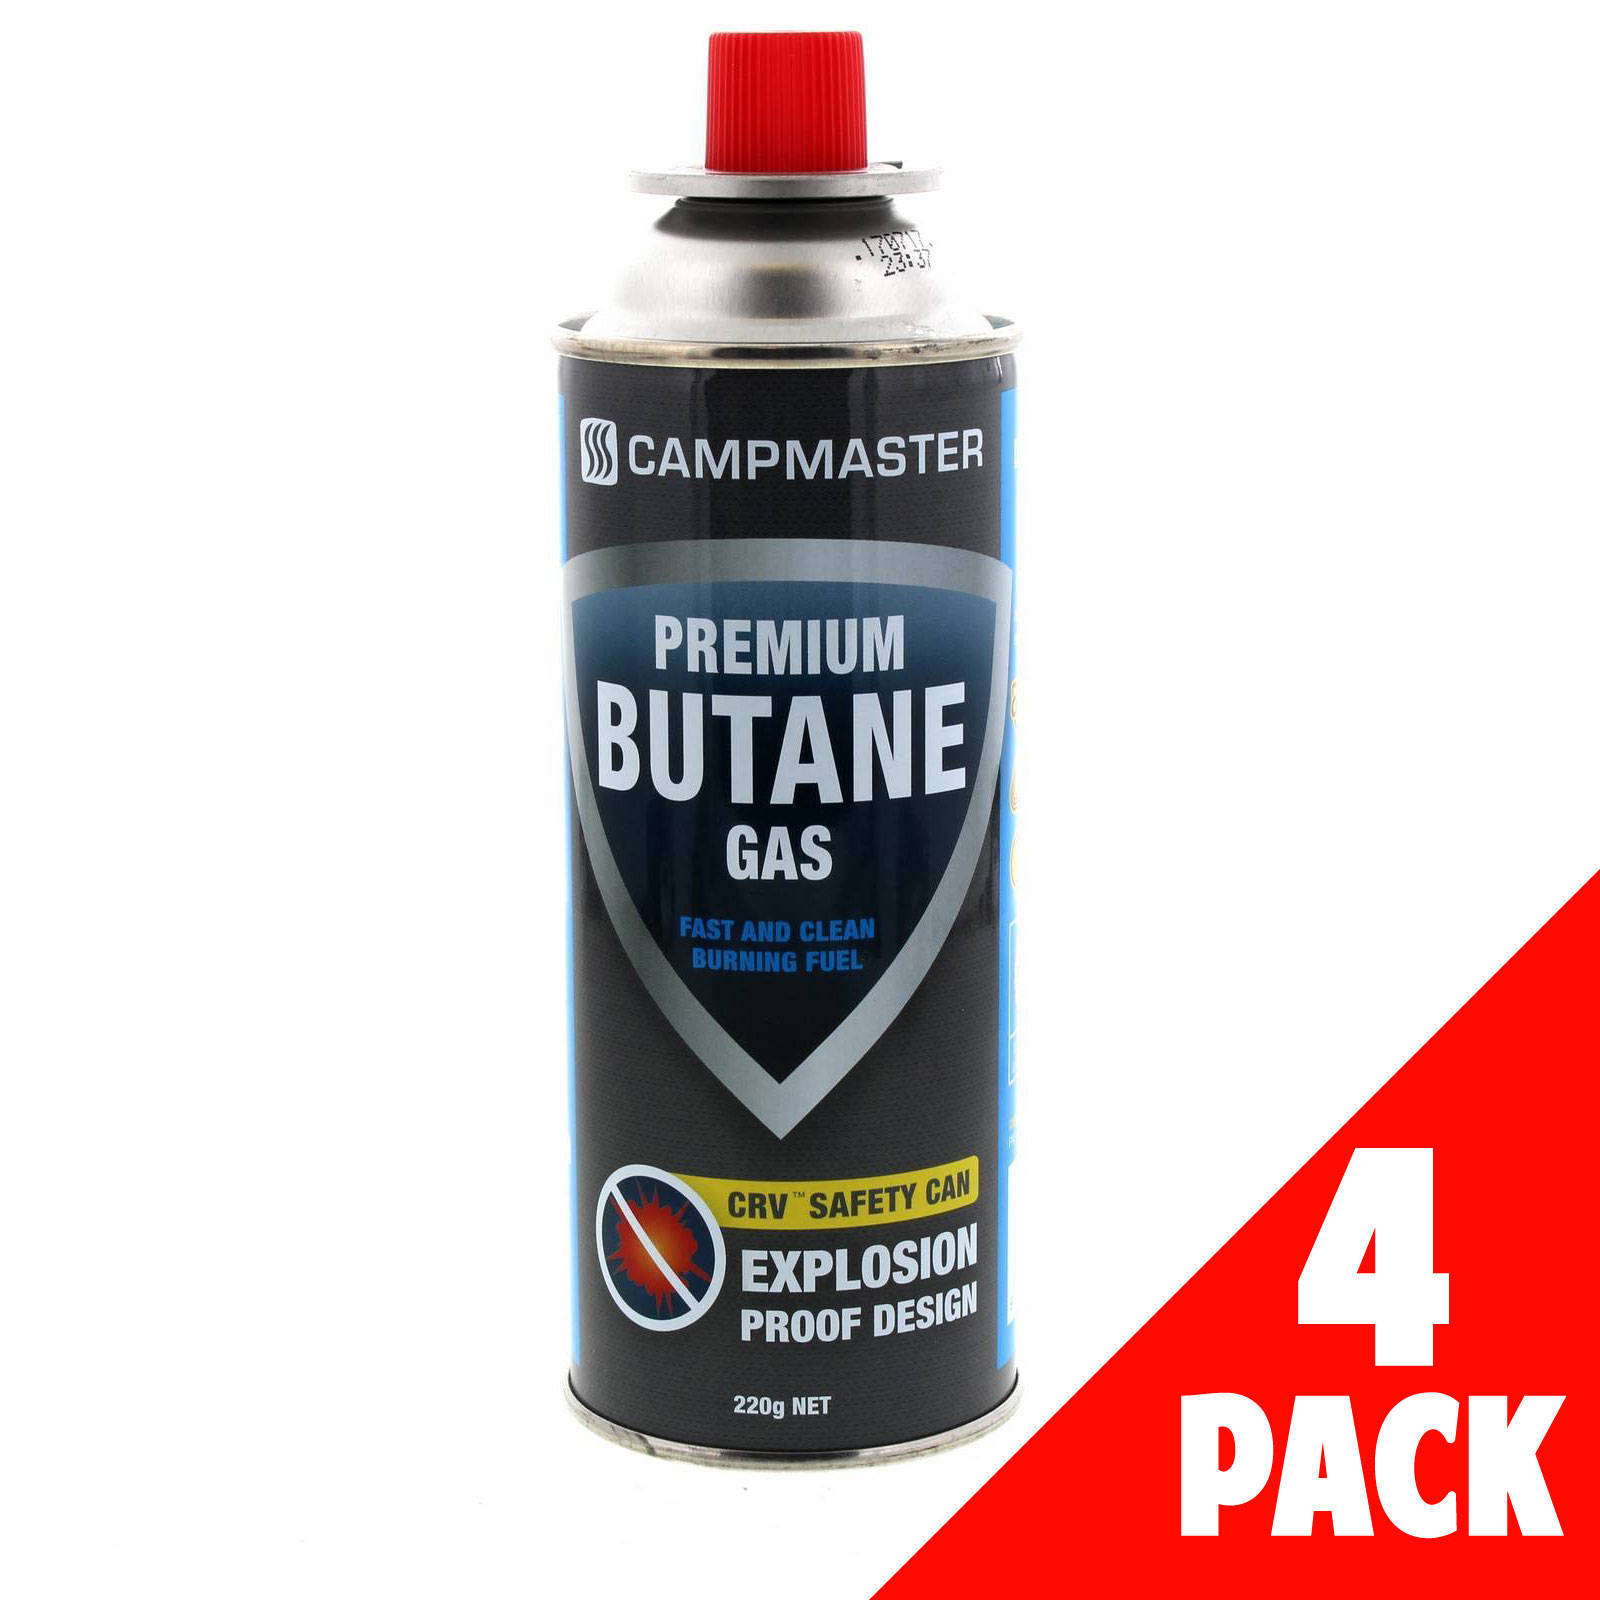 Details about Cartridge Premium Butane 220g 4 Pack Explosion Proof Cans  Safety Flame Control